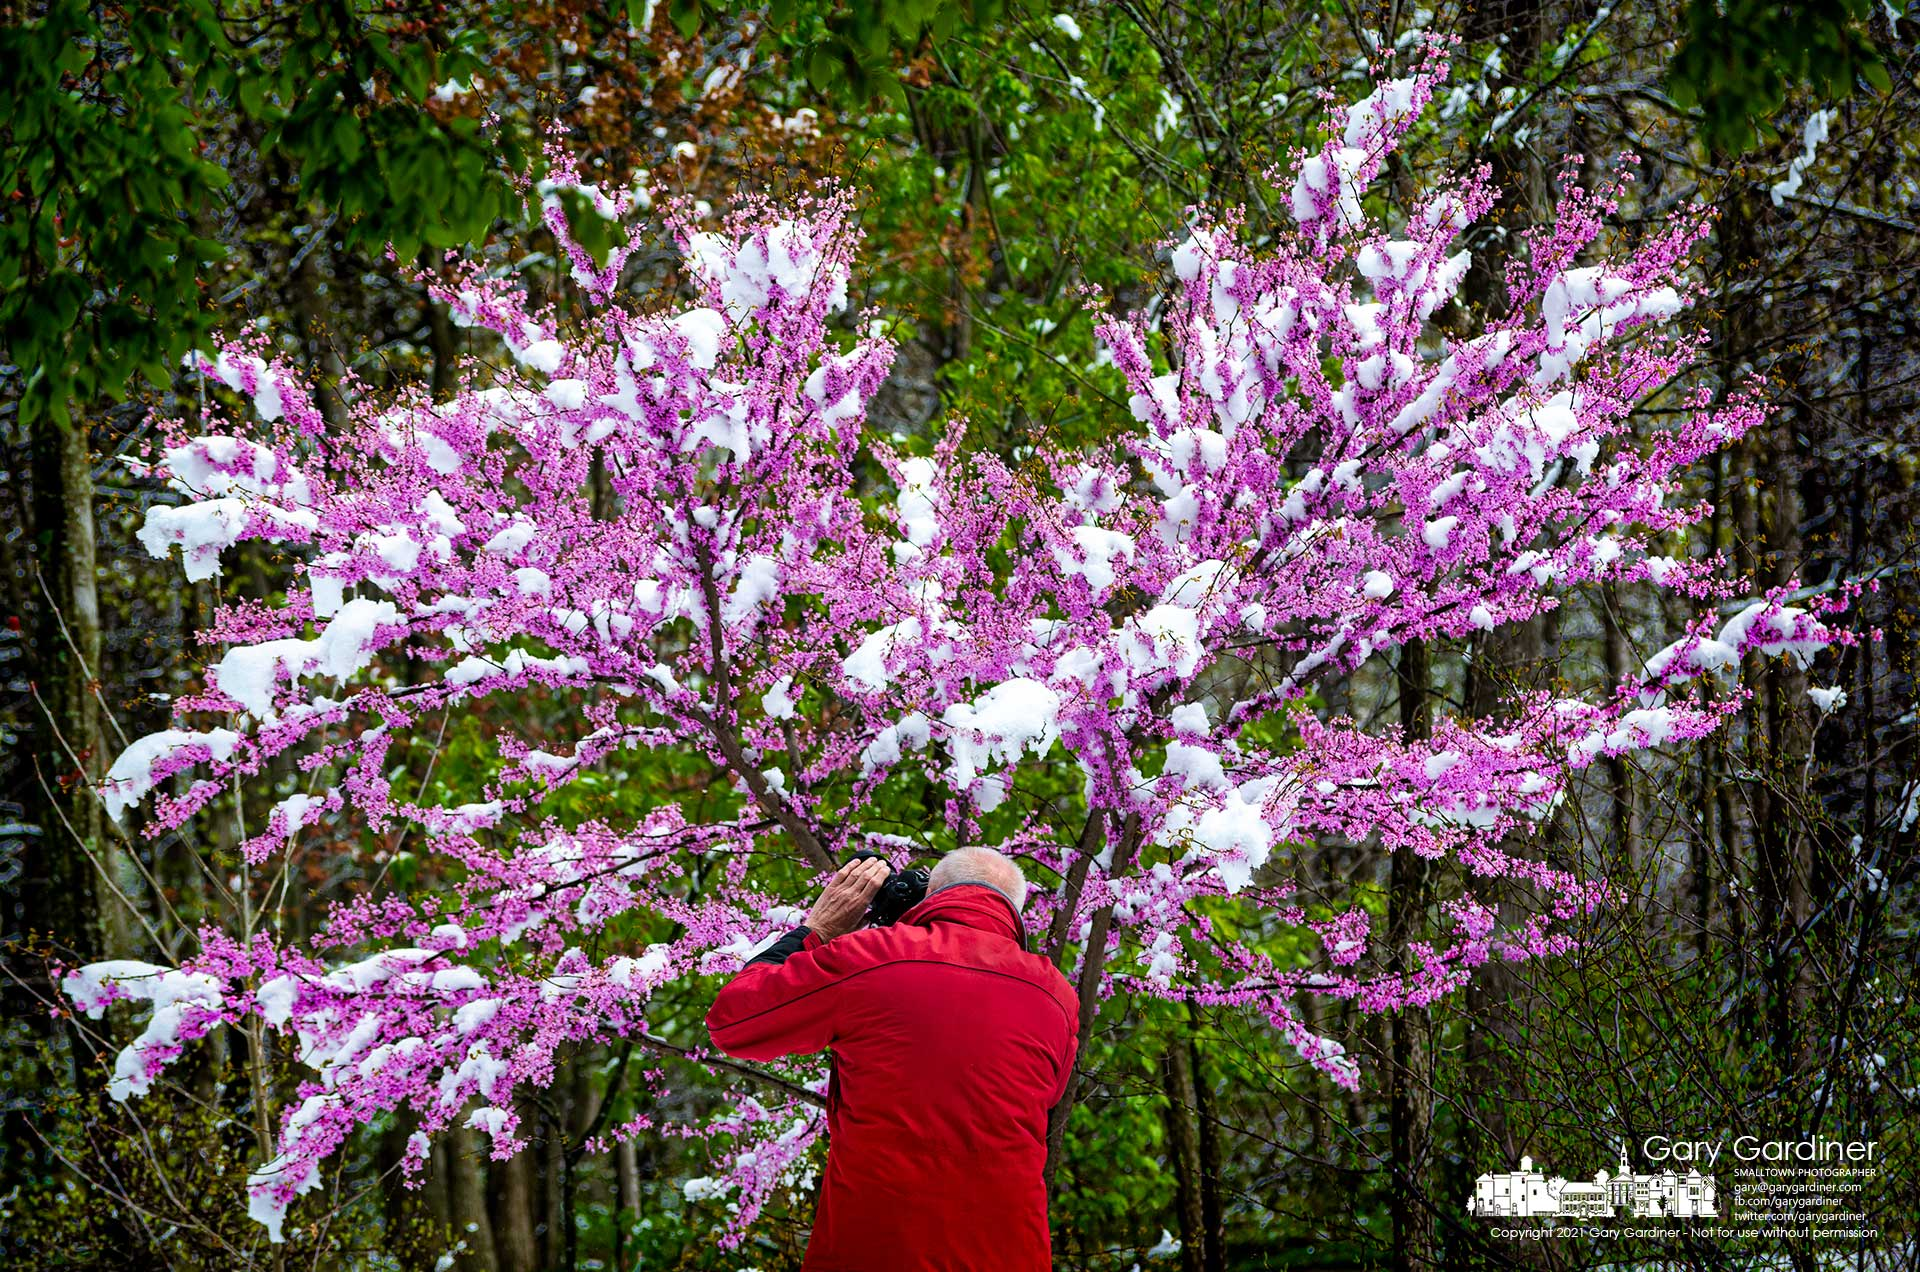 A photographer trains his camera on the snow-covered blossoms of a redbud tree at Inniswood Metro Gardens after an overnight Spring snowfall. My Final Photo for April 21, 2021.